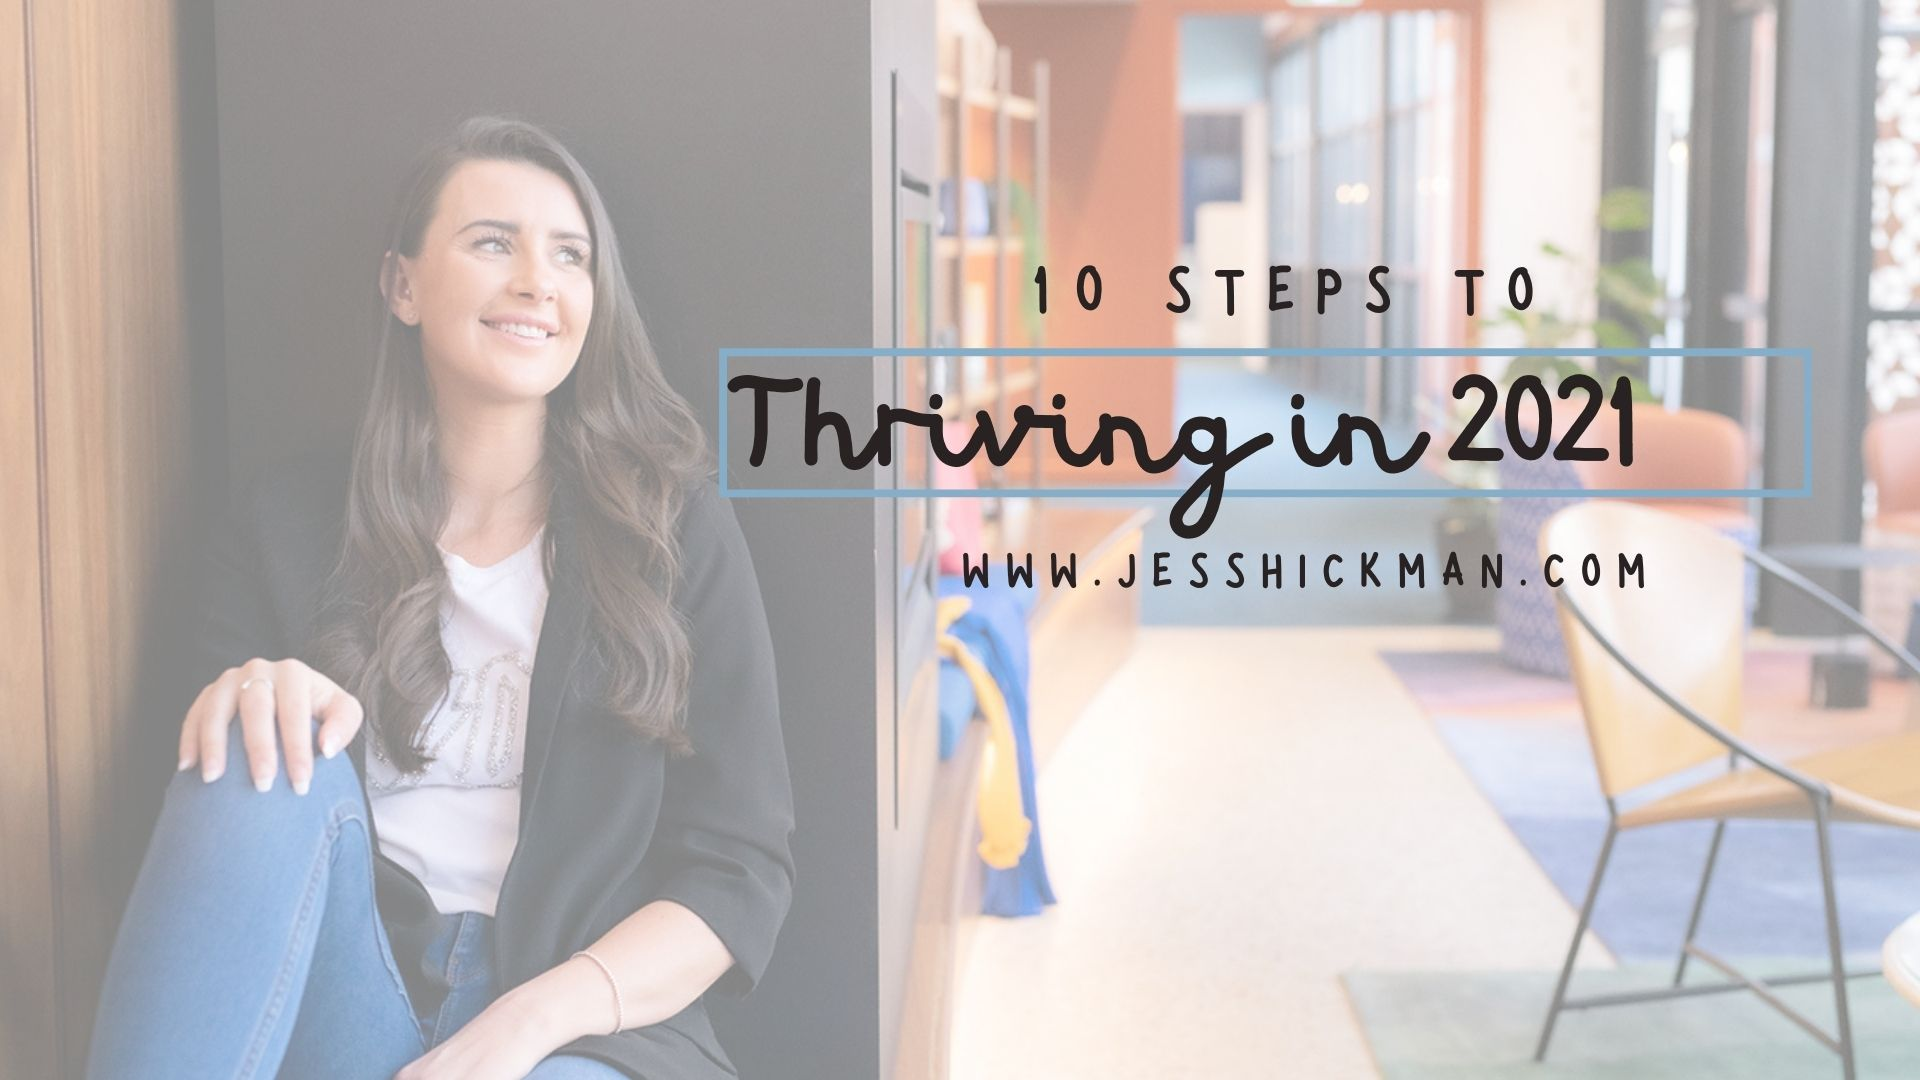 Steps to Thriving in 2021